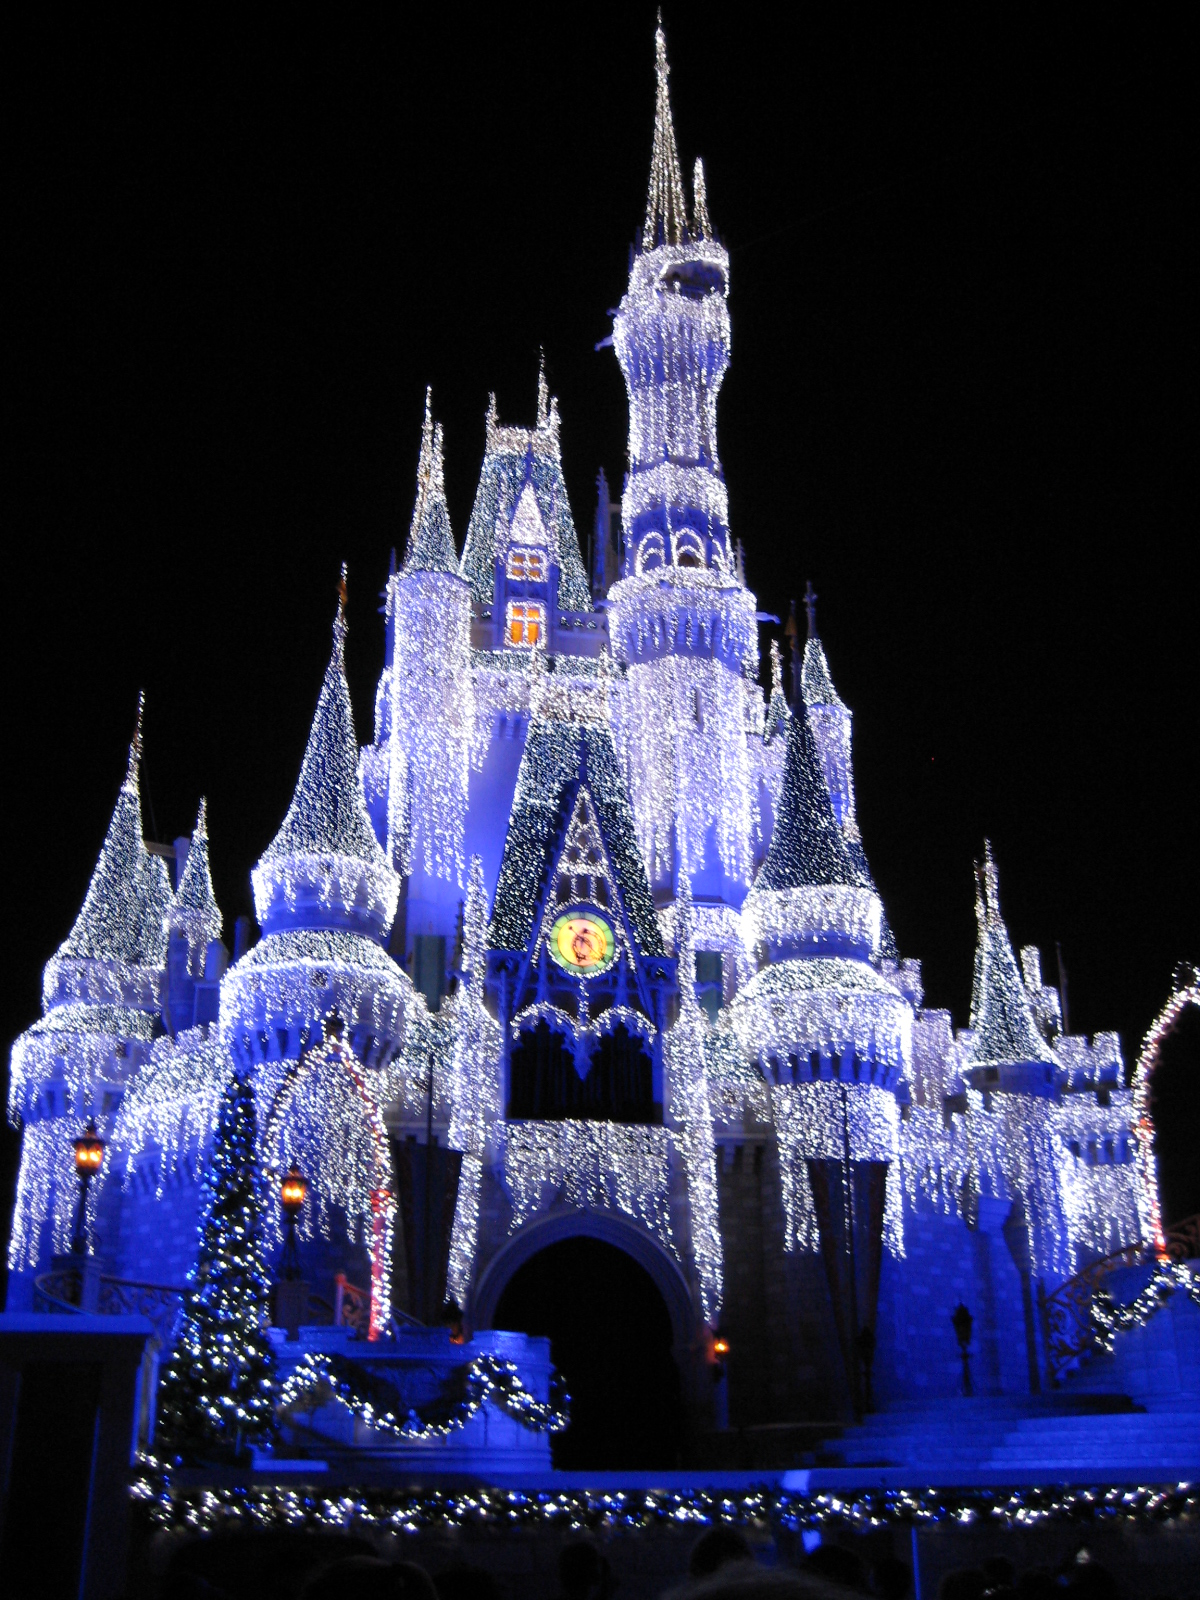 Cinderella's Castle at Christmas!